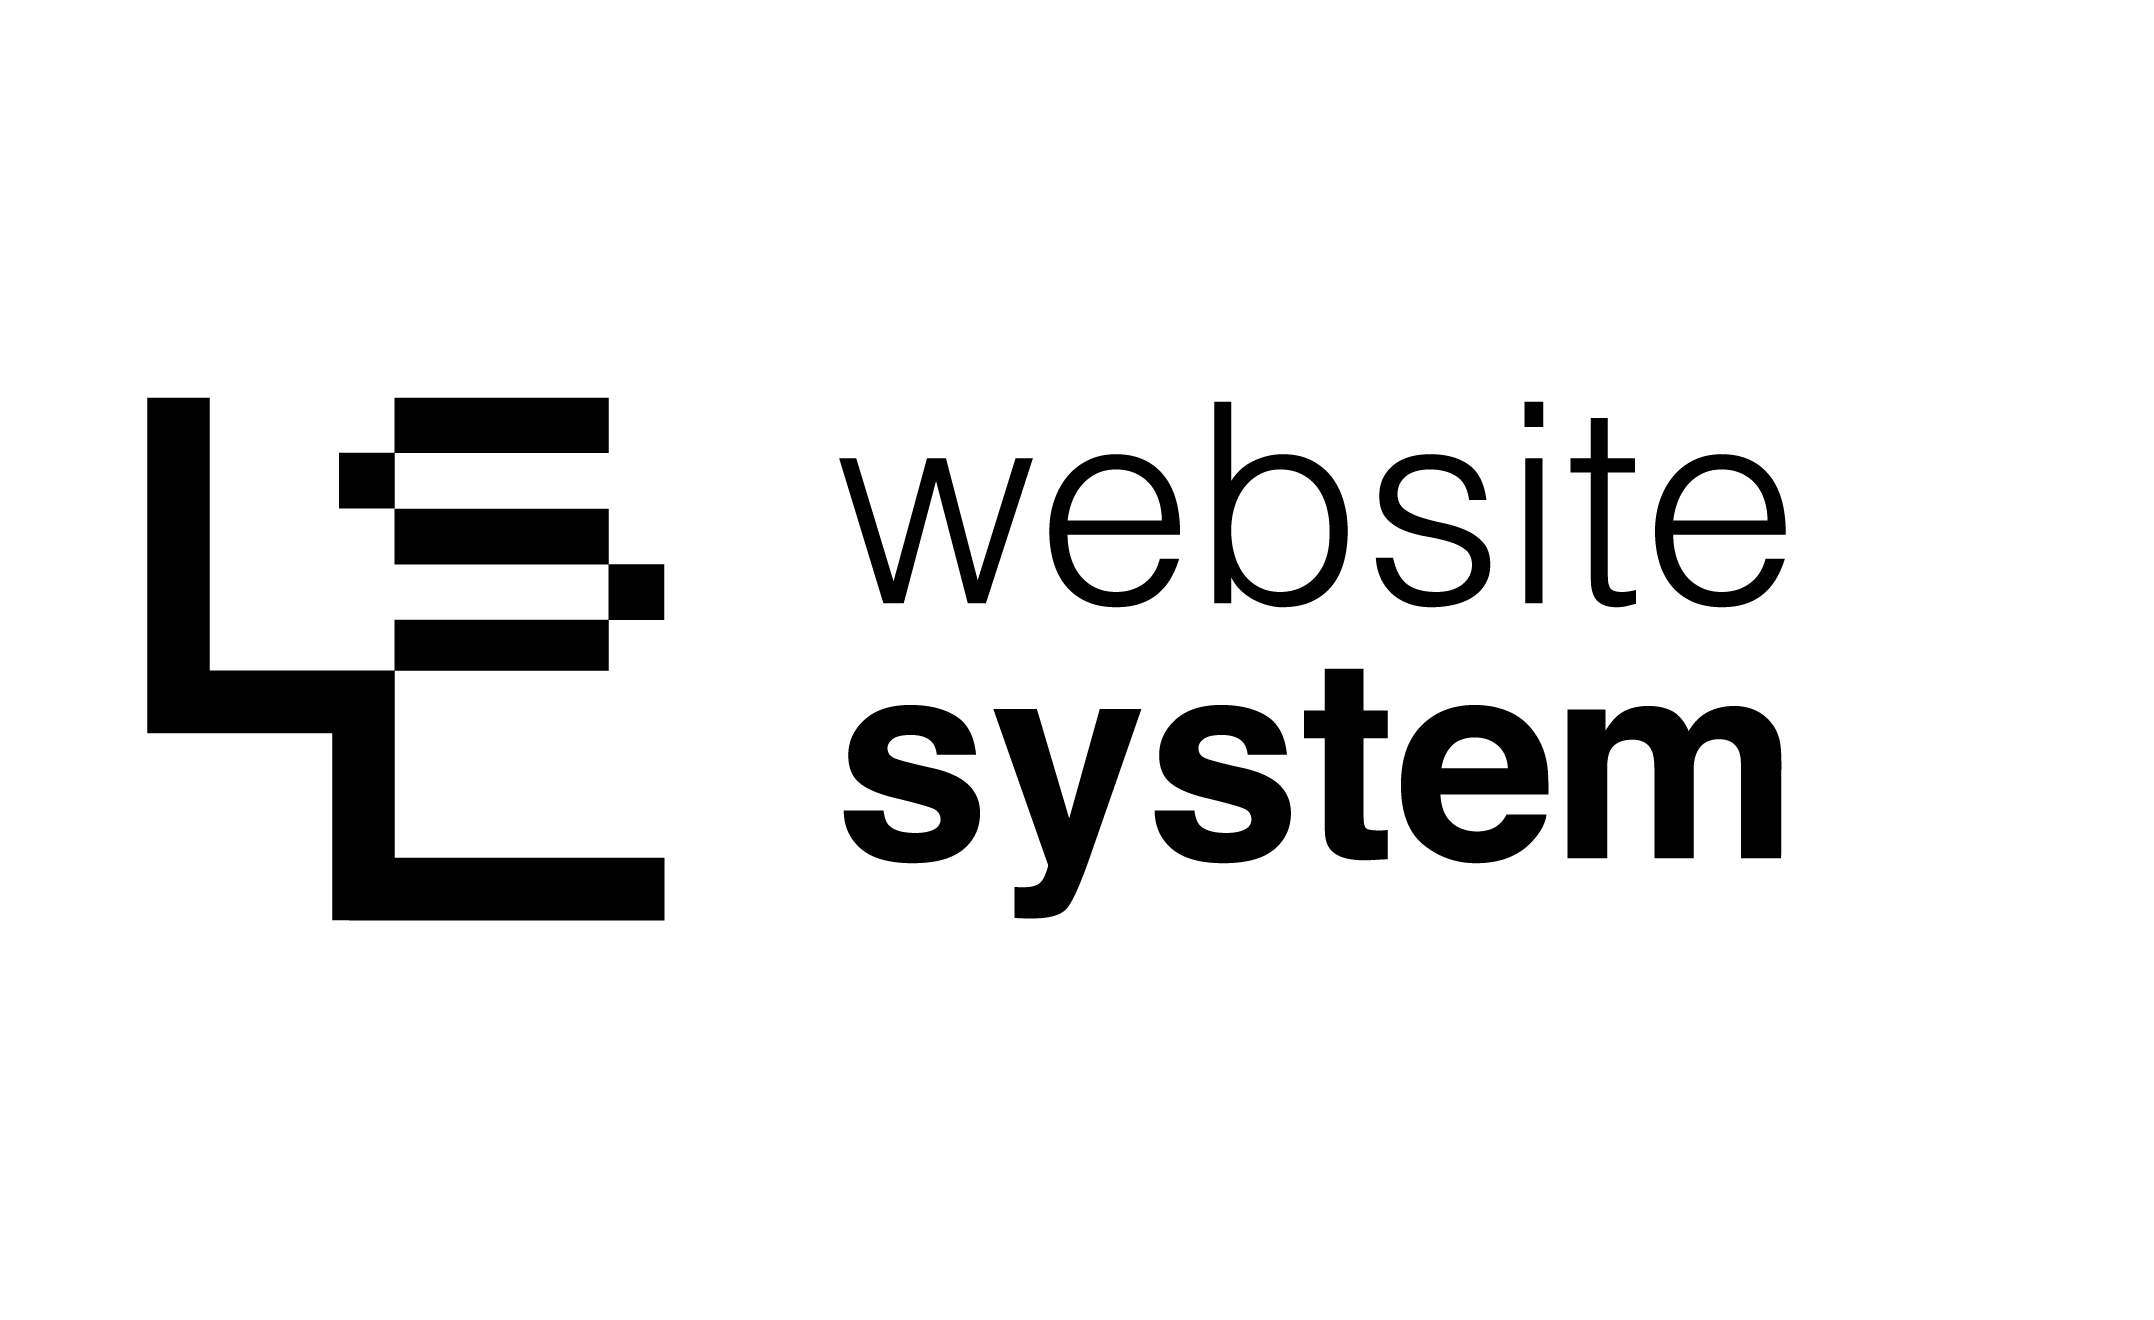 Website Stystem